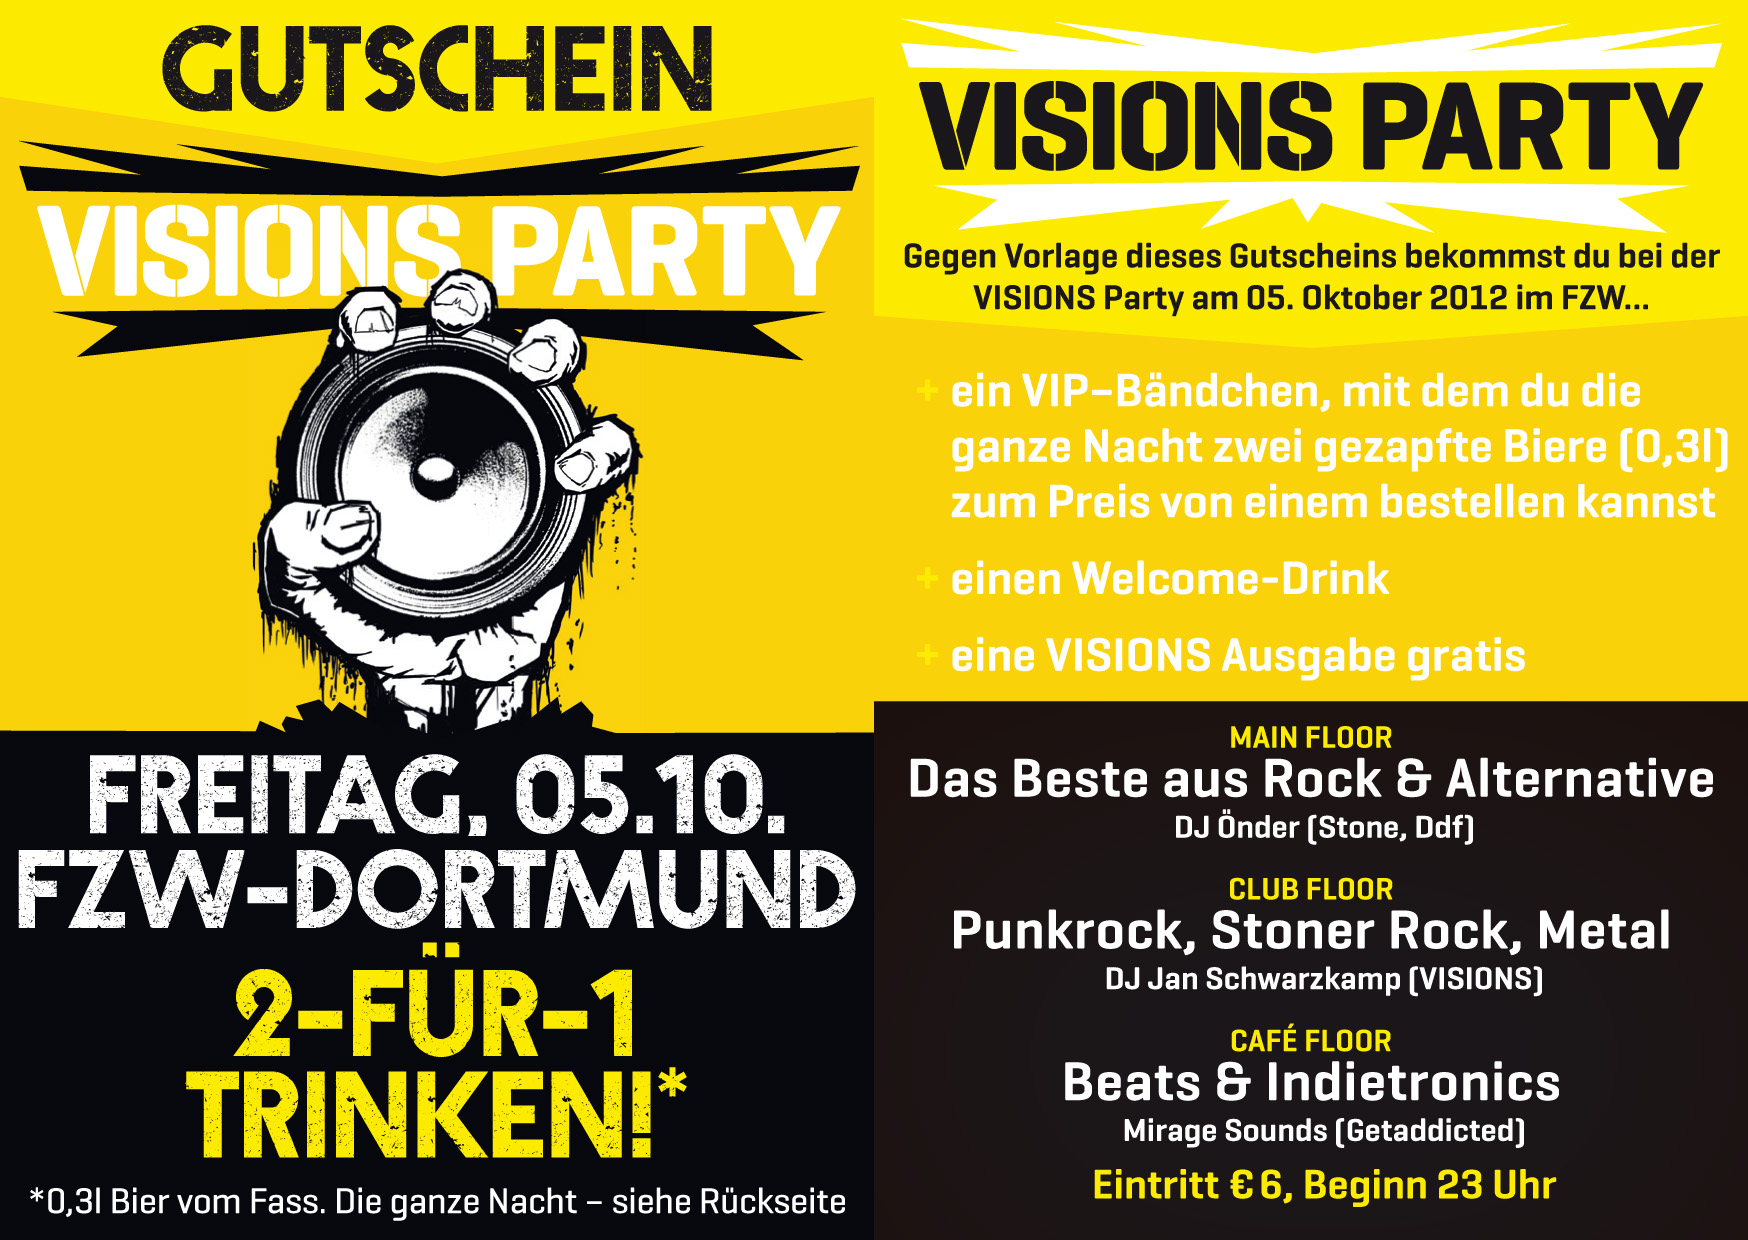 news visions party heute abend im fzw 14 32. Black Bedroom Furniture Sets. Home Design Ideas